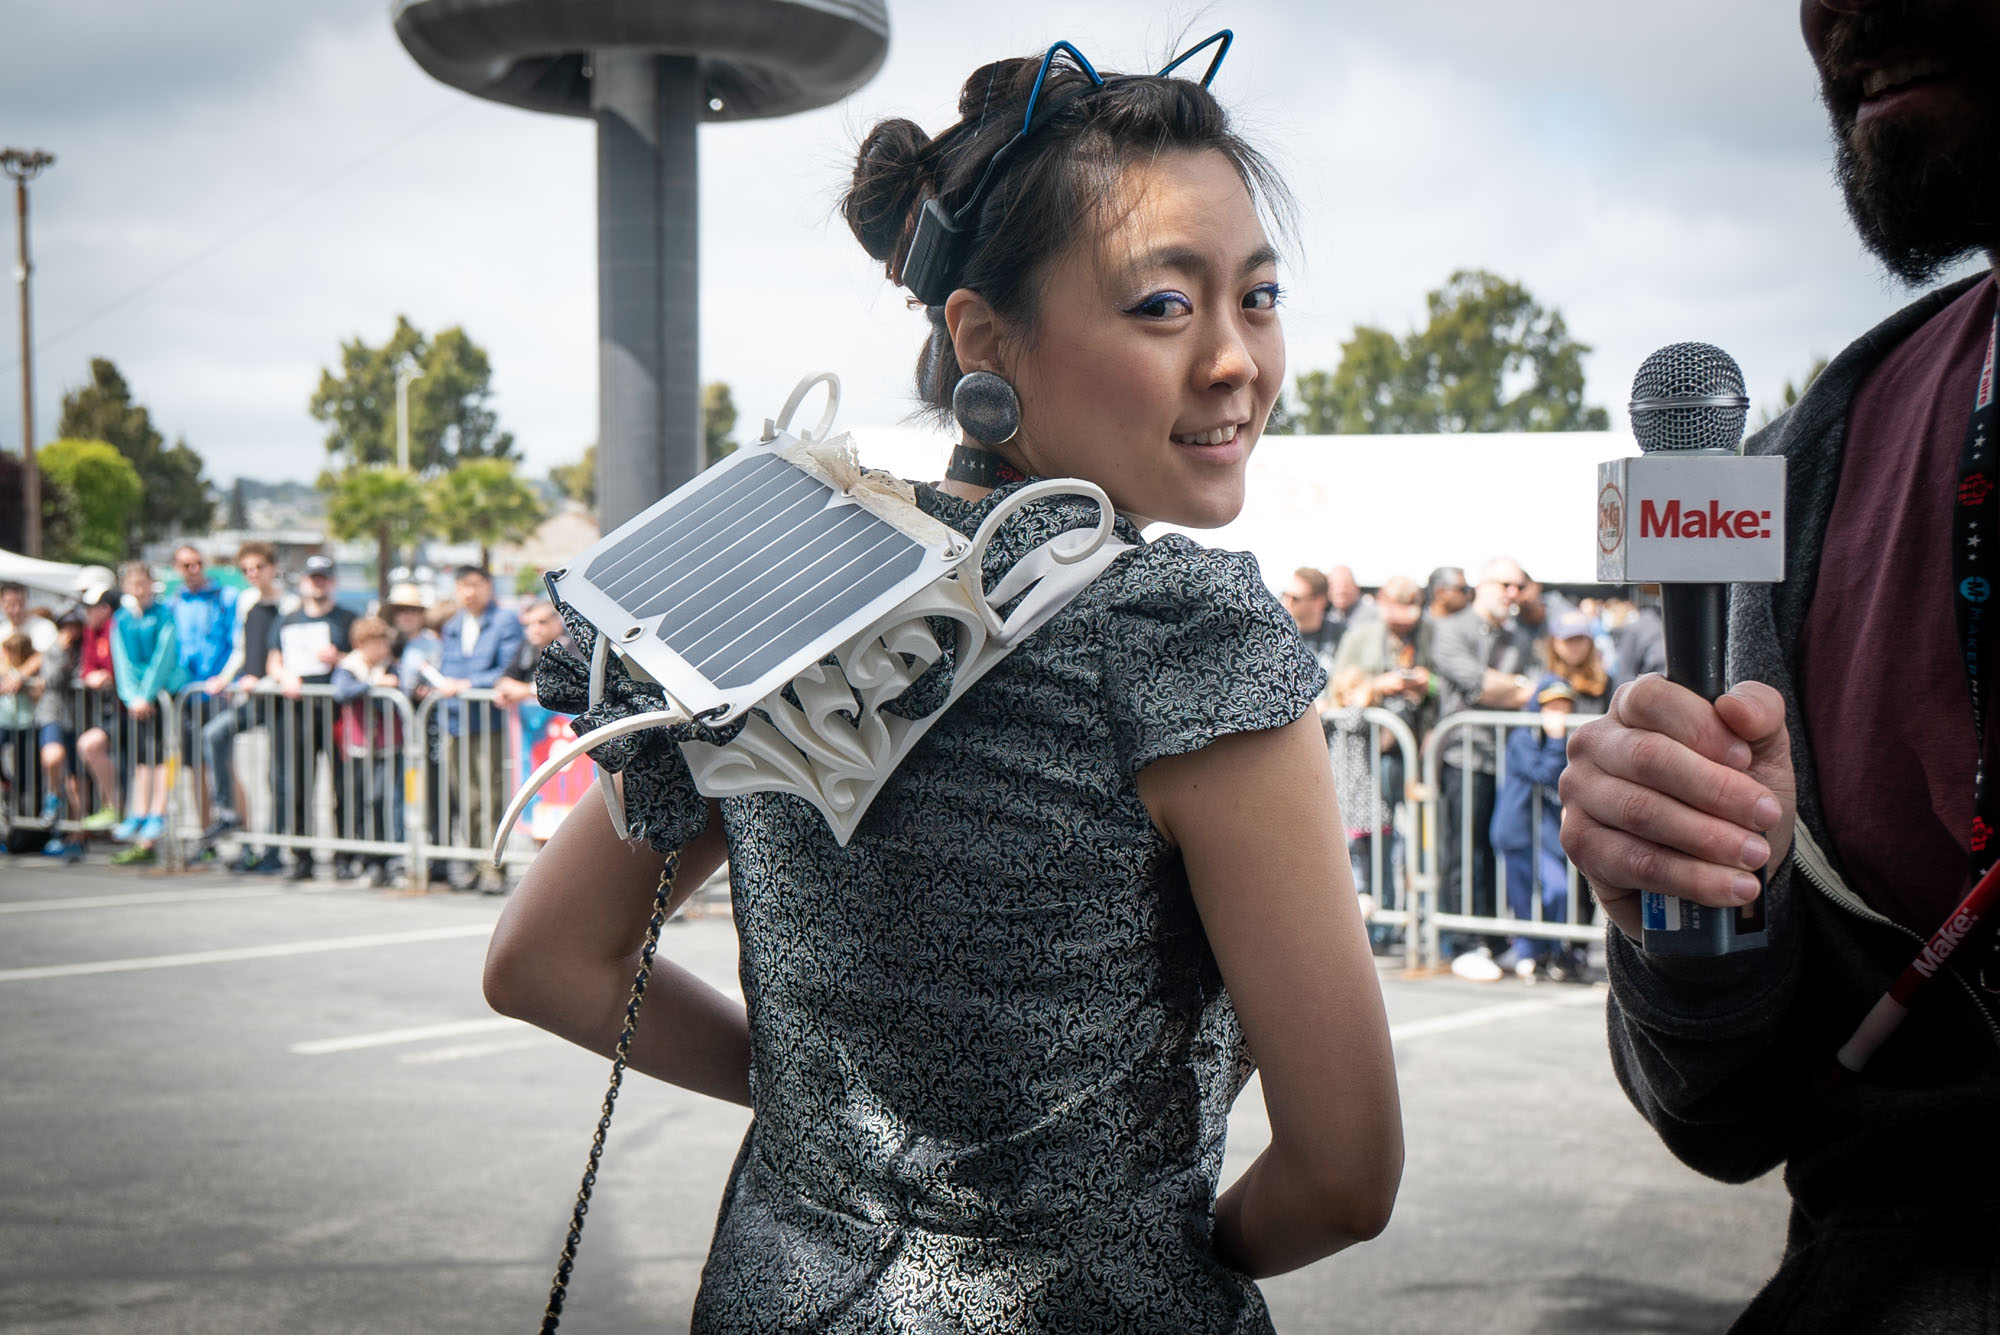 Kitty Yeung stands with her back to the camera looking over one shoulder, displaying her 3D printed solar panel wearable recharging station on her back.